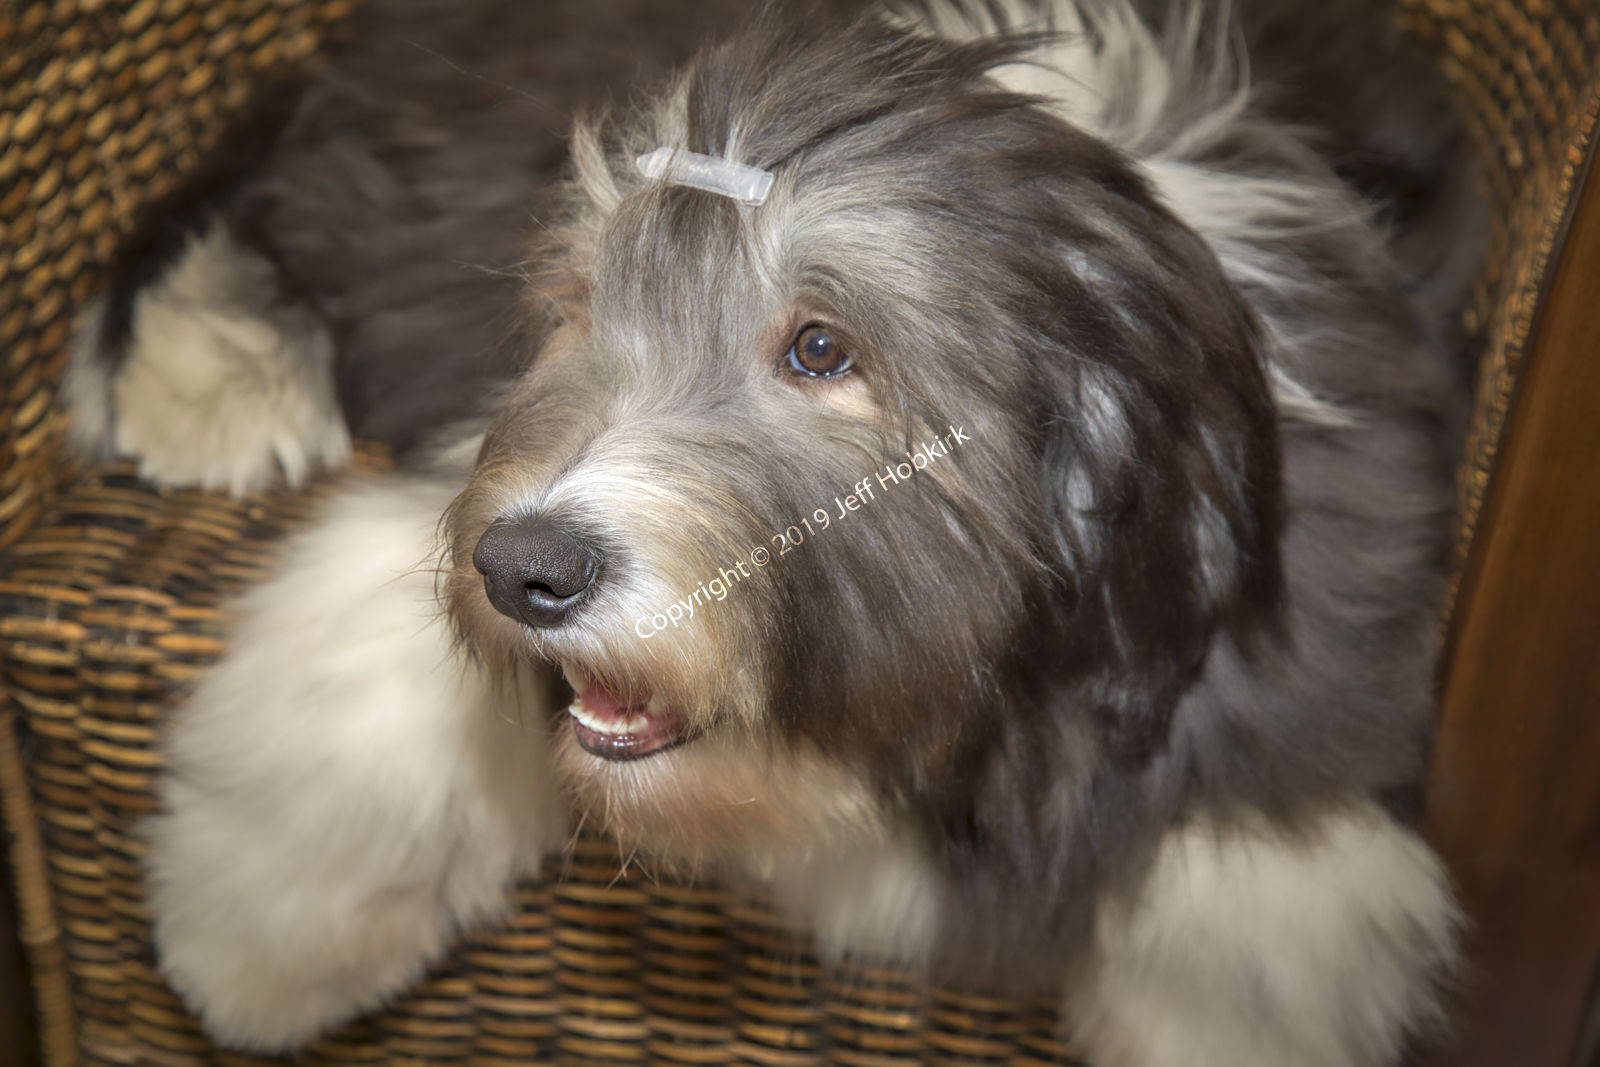 Belle - Our Bearded Collie